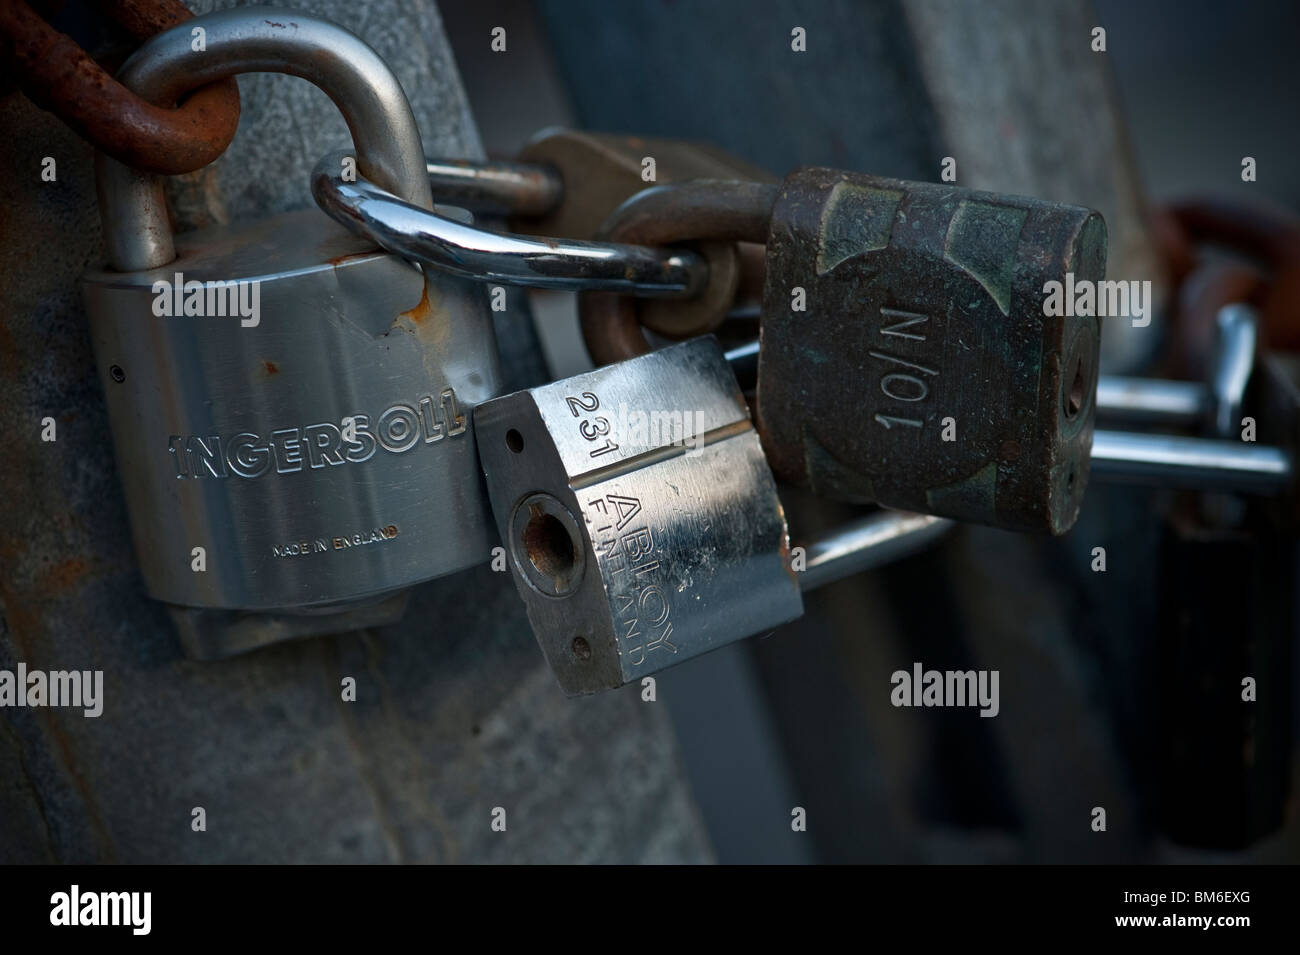 interlocked interlocking chained Padlocks on a gate - Stock Image